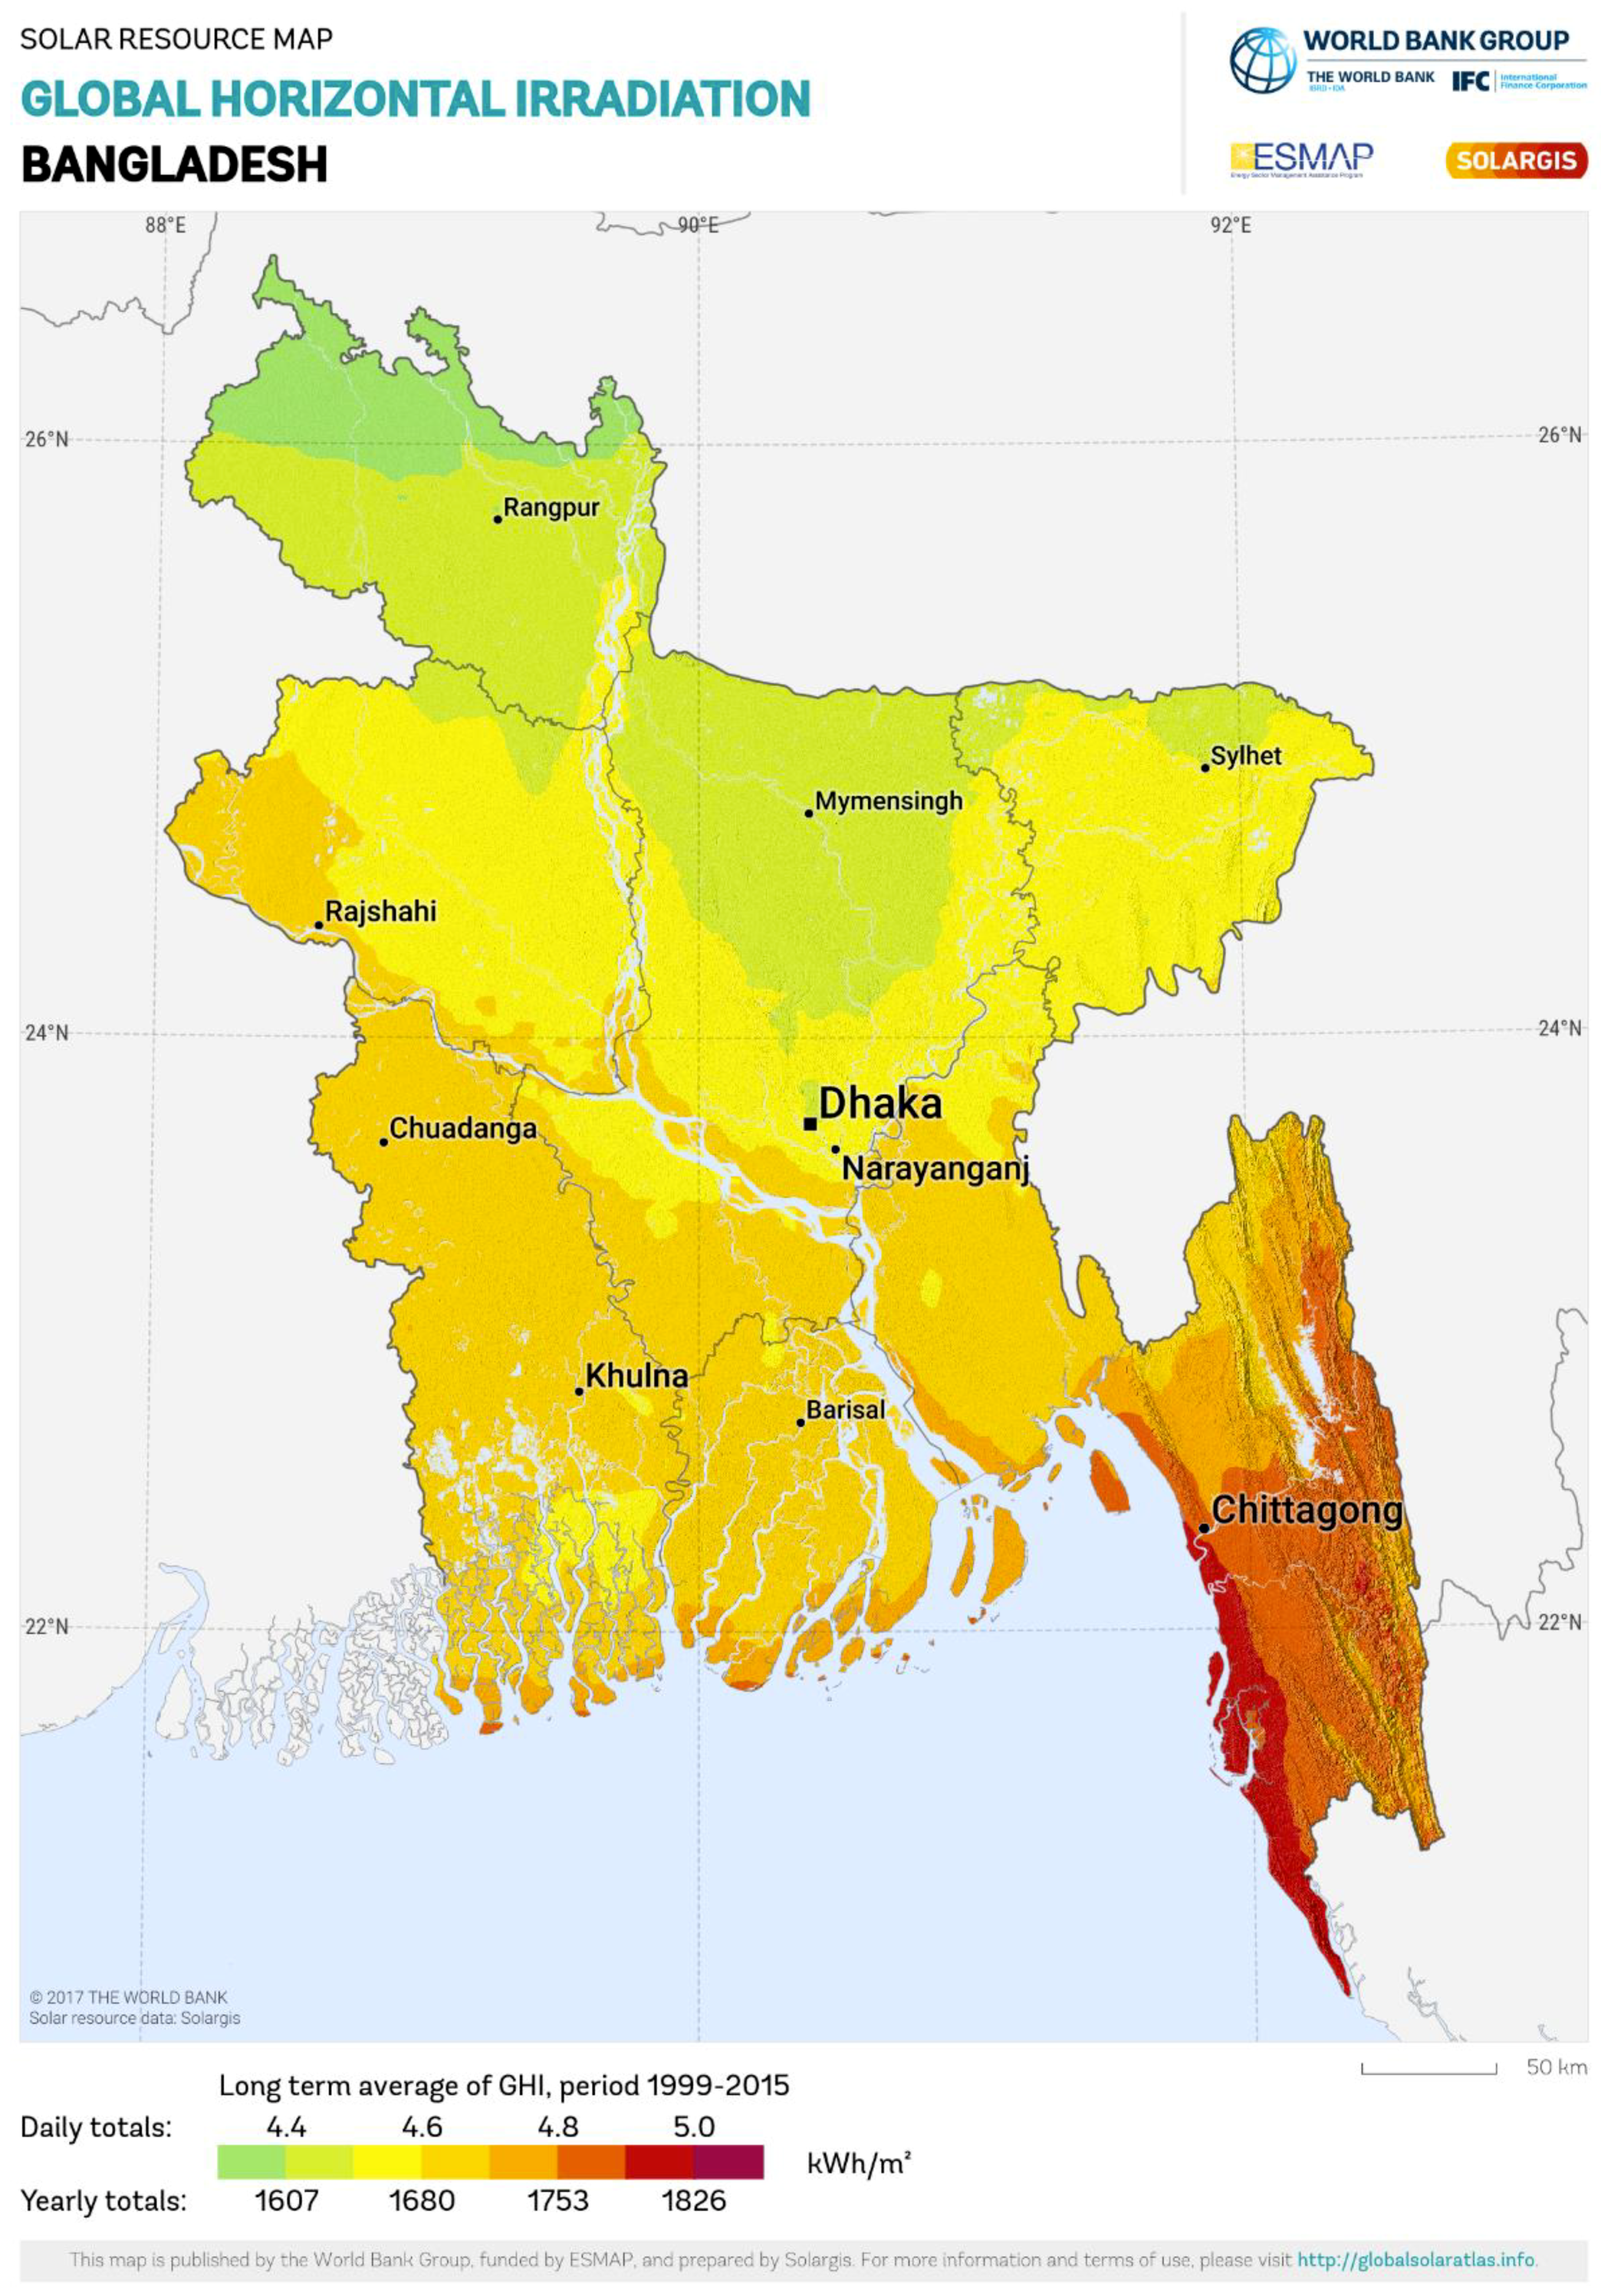 Sustainability Free Full Text Renewable Energy For Sustainable Growth And Development An Evaluation Of Law And Policy Of Bangladesh Html